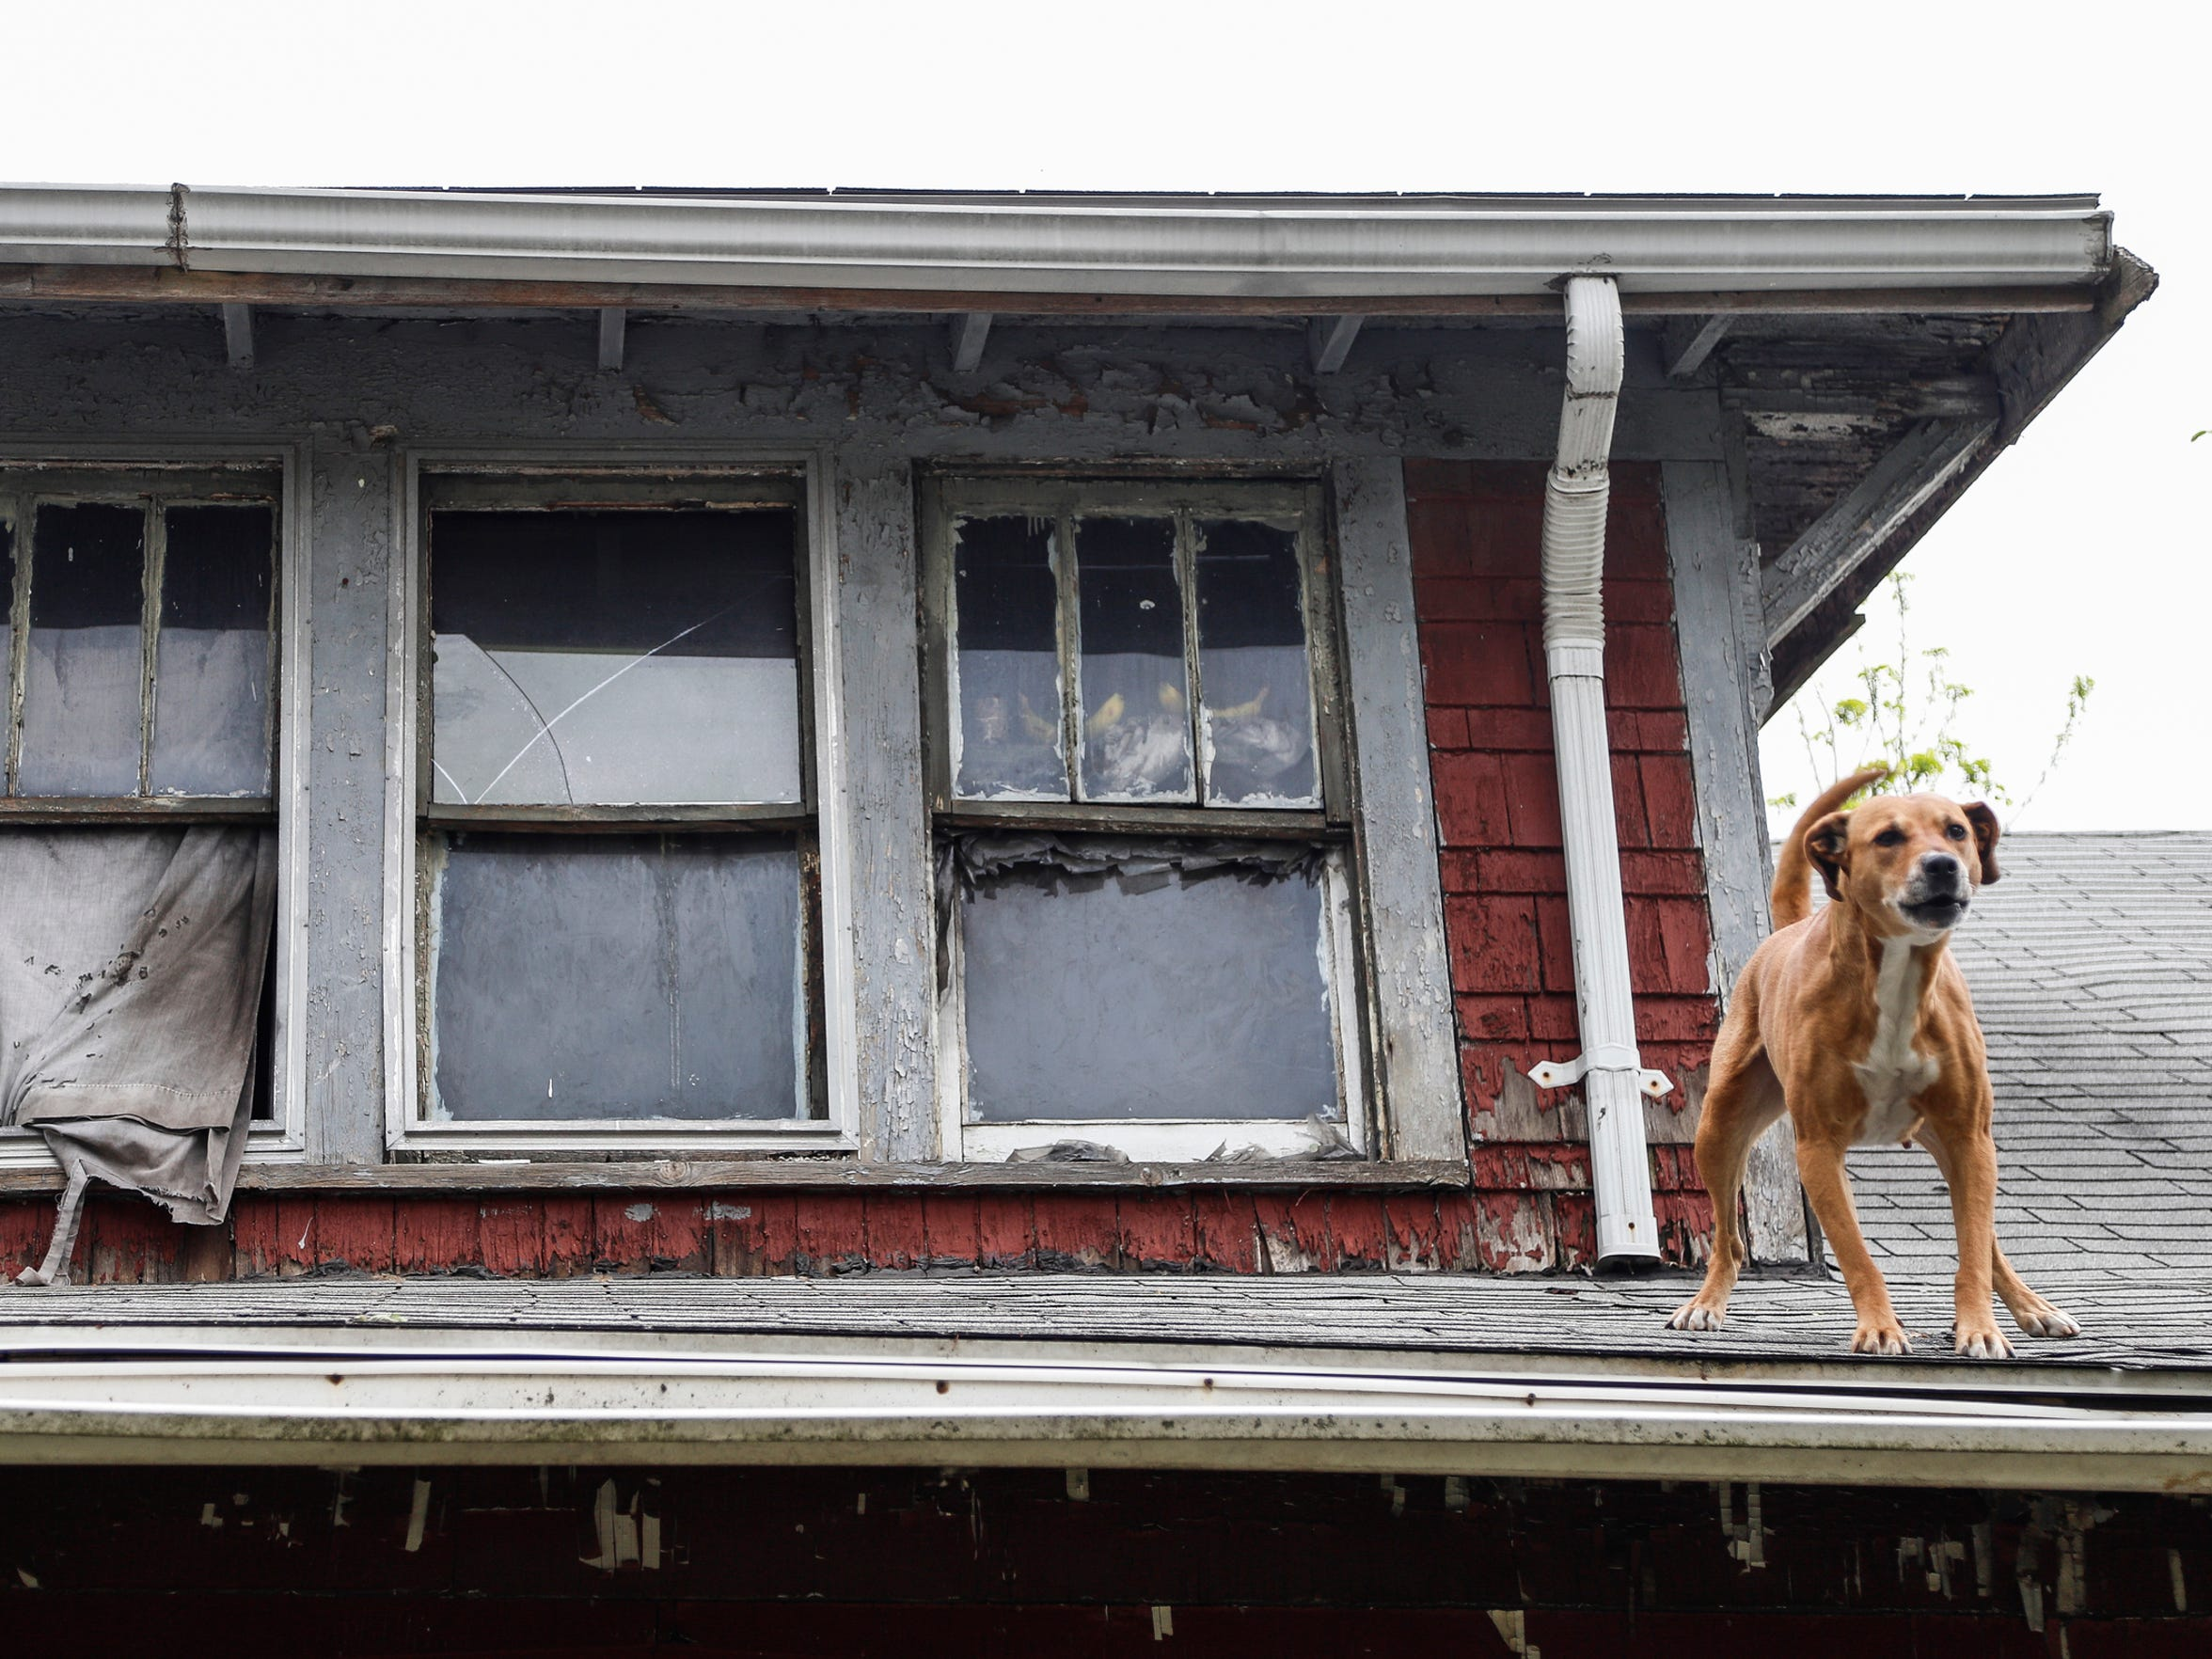 Sugar, a dog that belongs to an occupant of a land bank house in the 11400 block of Mendota, stands on a roof after jumping out of the second floor window in May. (Photo taken May 10, 2018)